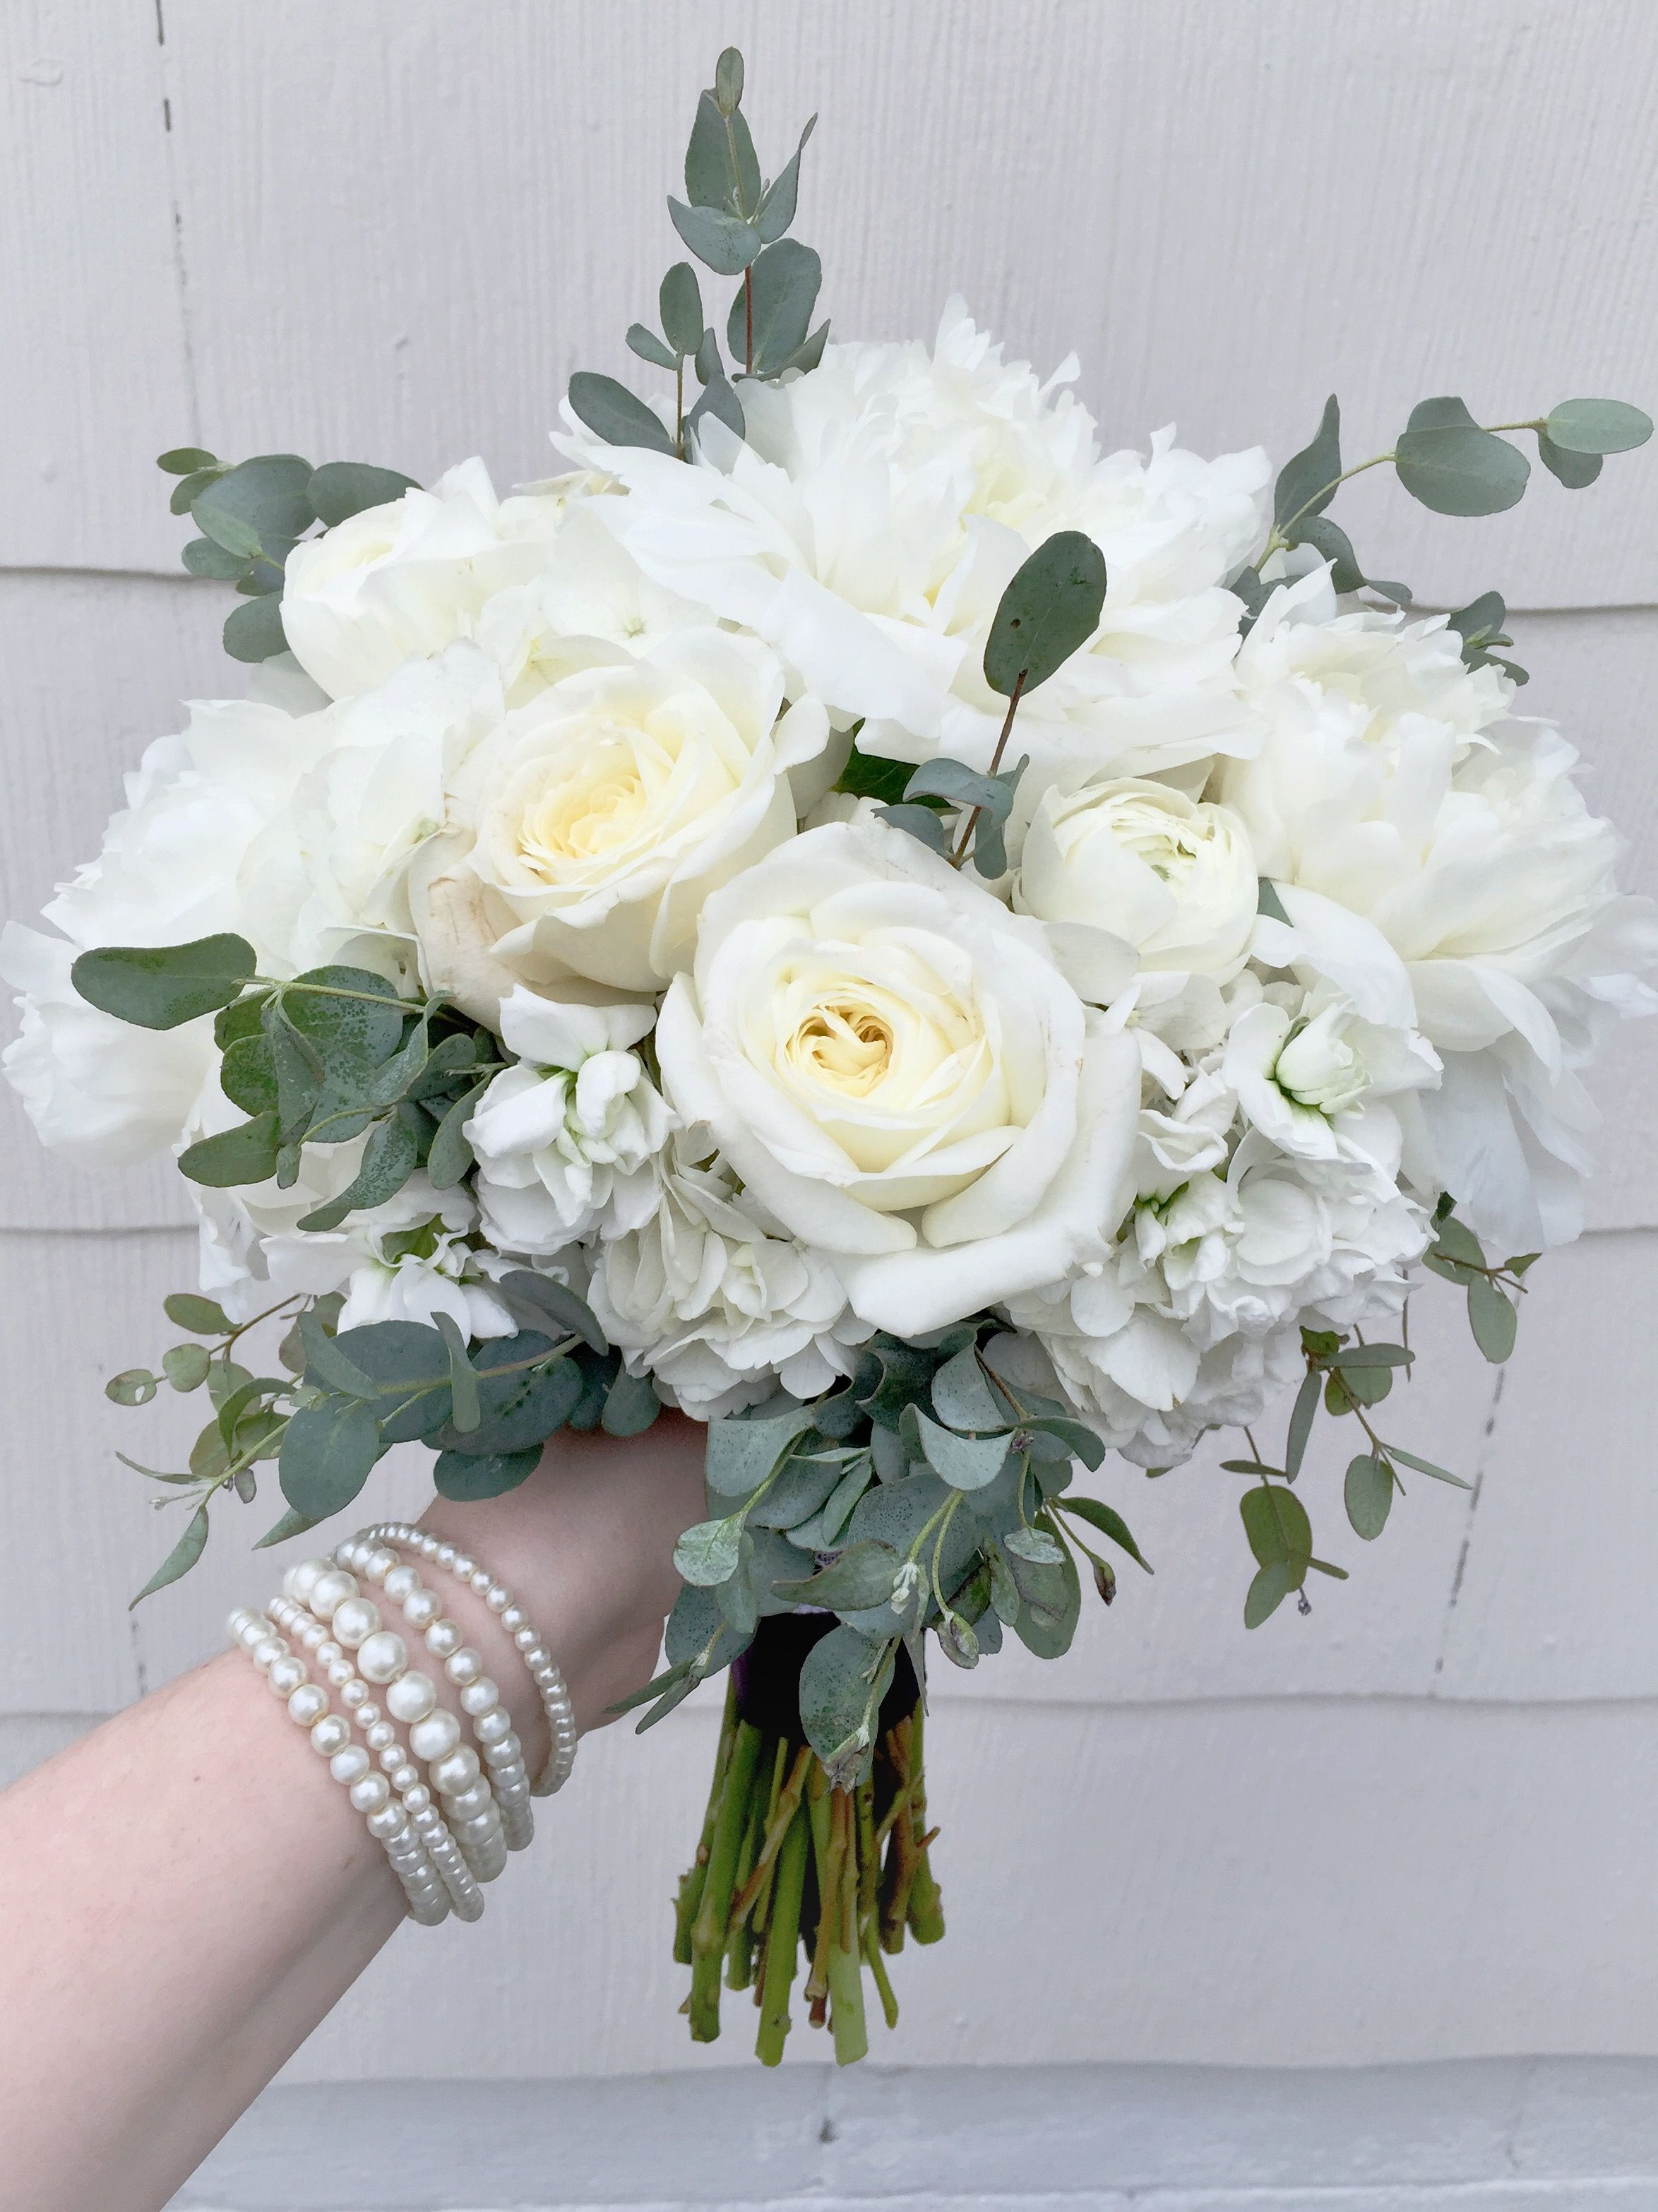 Elegant white bridesmaid s bouquet composed of peonies